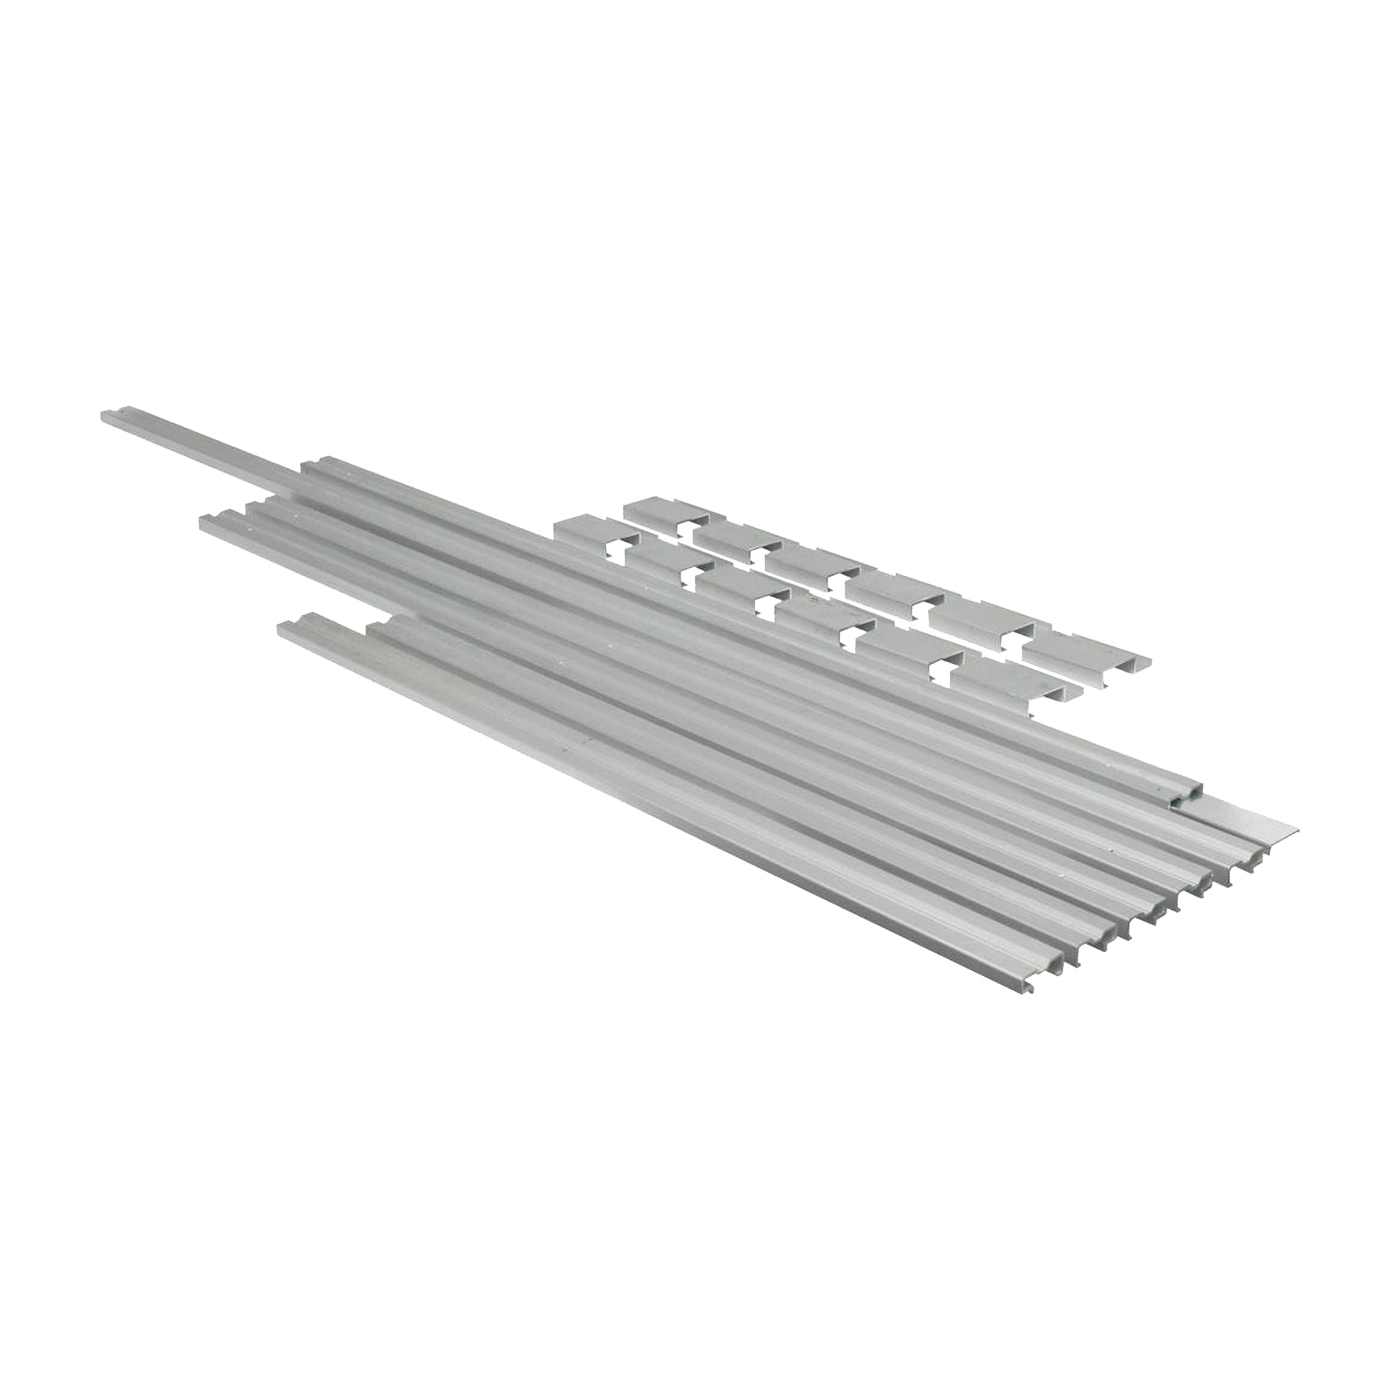 Picture of Make-2-Fit P 7924 Screen Table Jig Set, Aluminum Blade